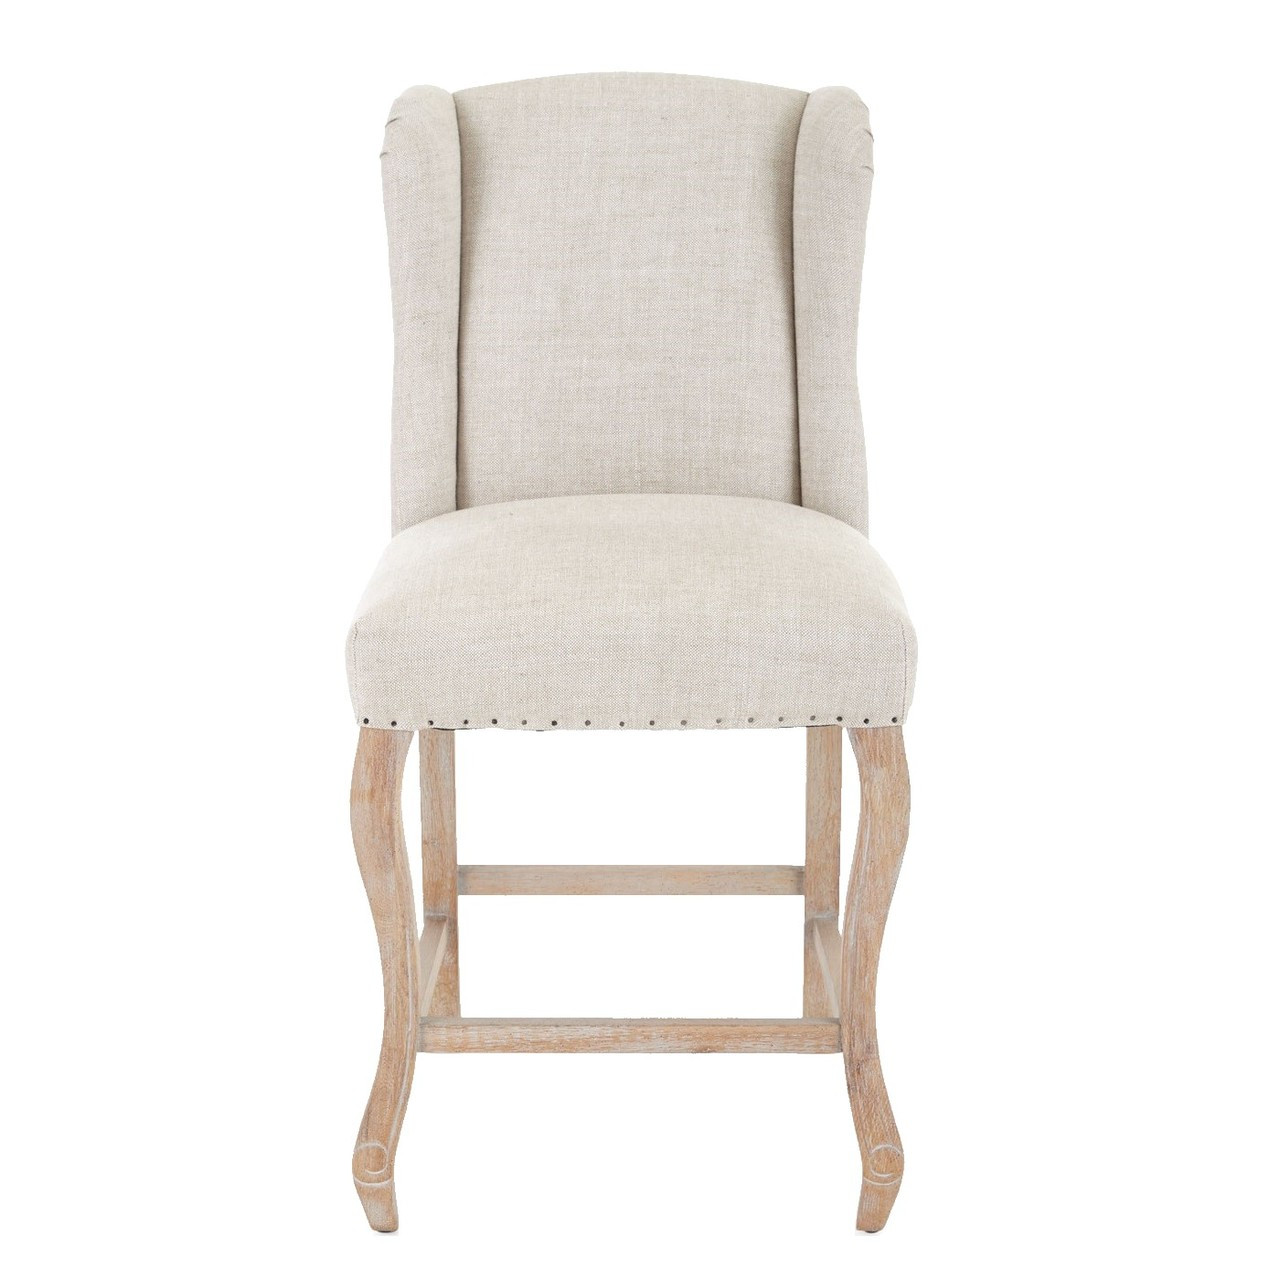 Astounding Rosemary Beige Belgian Linen Counter Stool Gmtry Best Dining Table And Chair Ideas Images Gmtryco